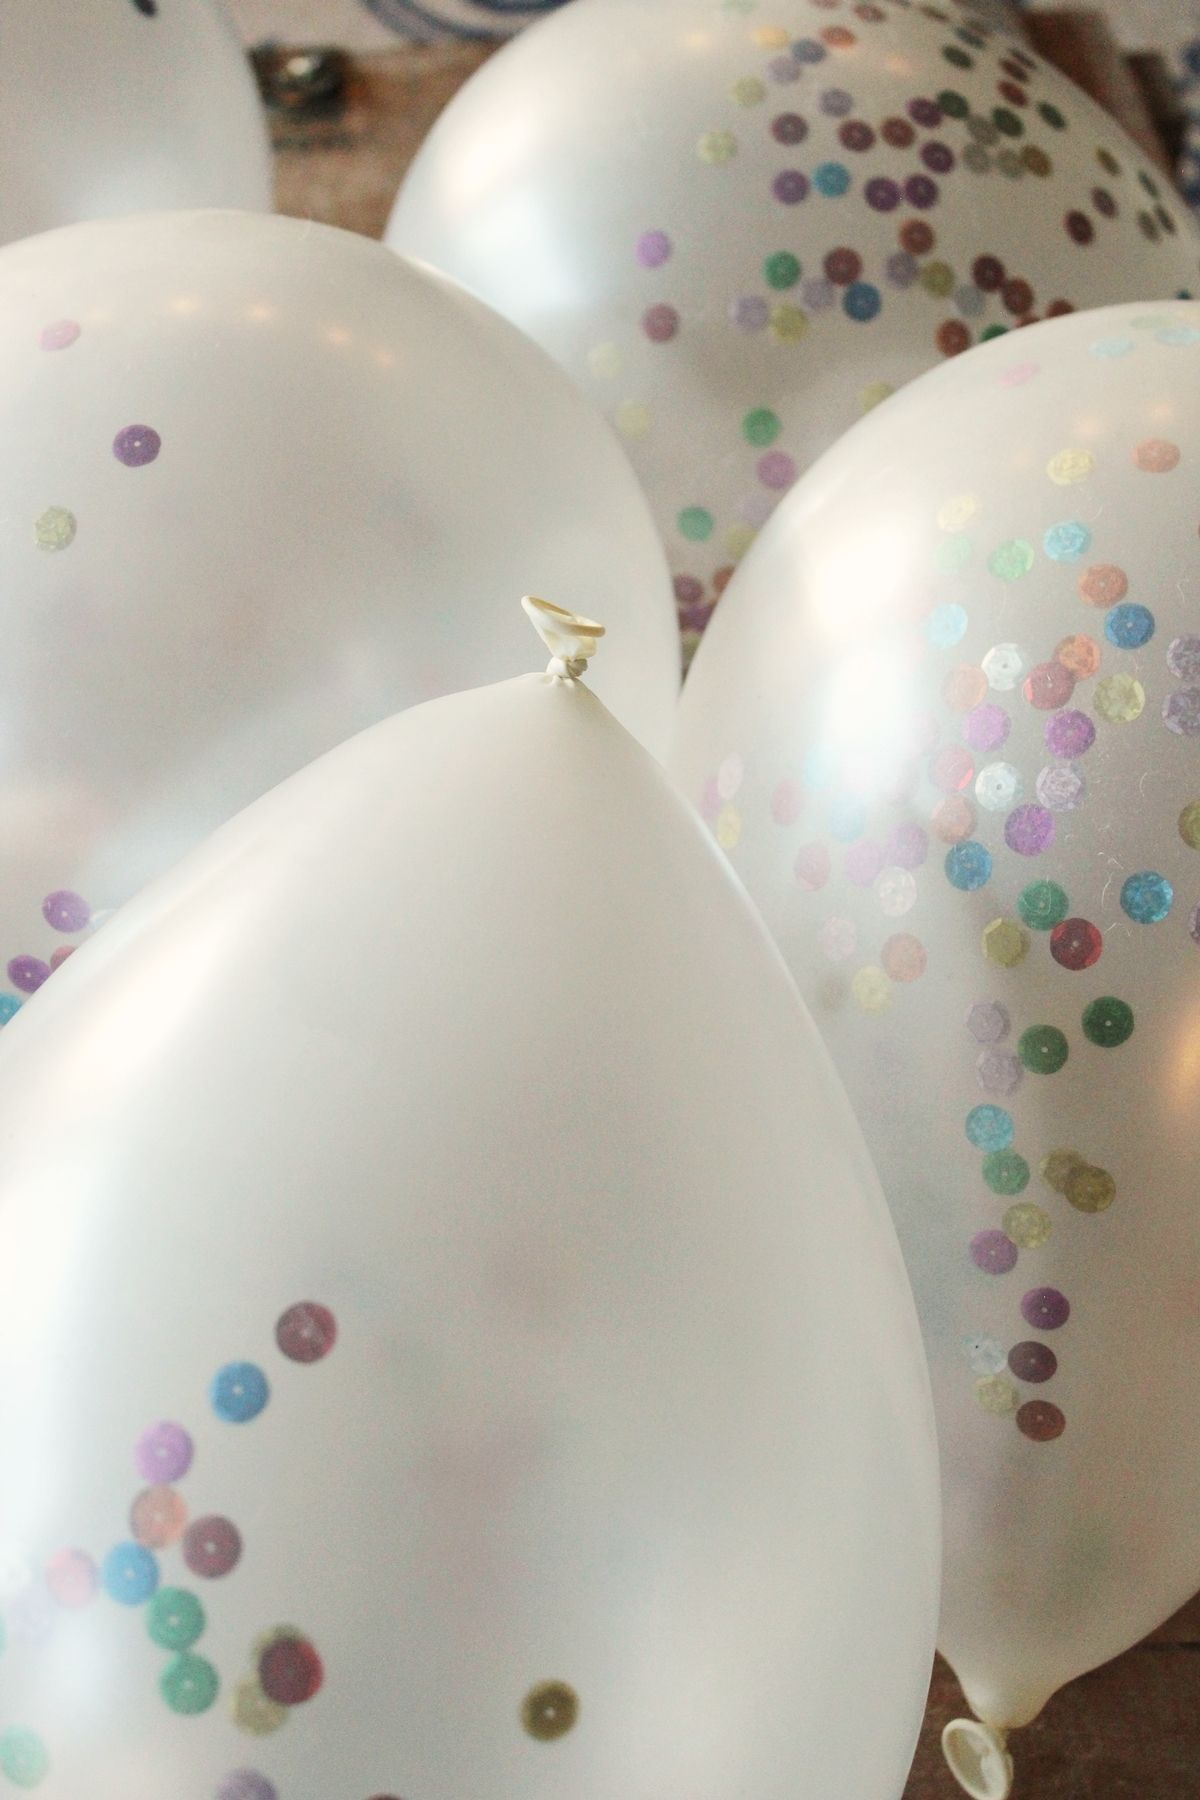 Ballons for New Years DIY